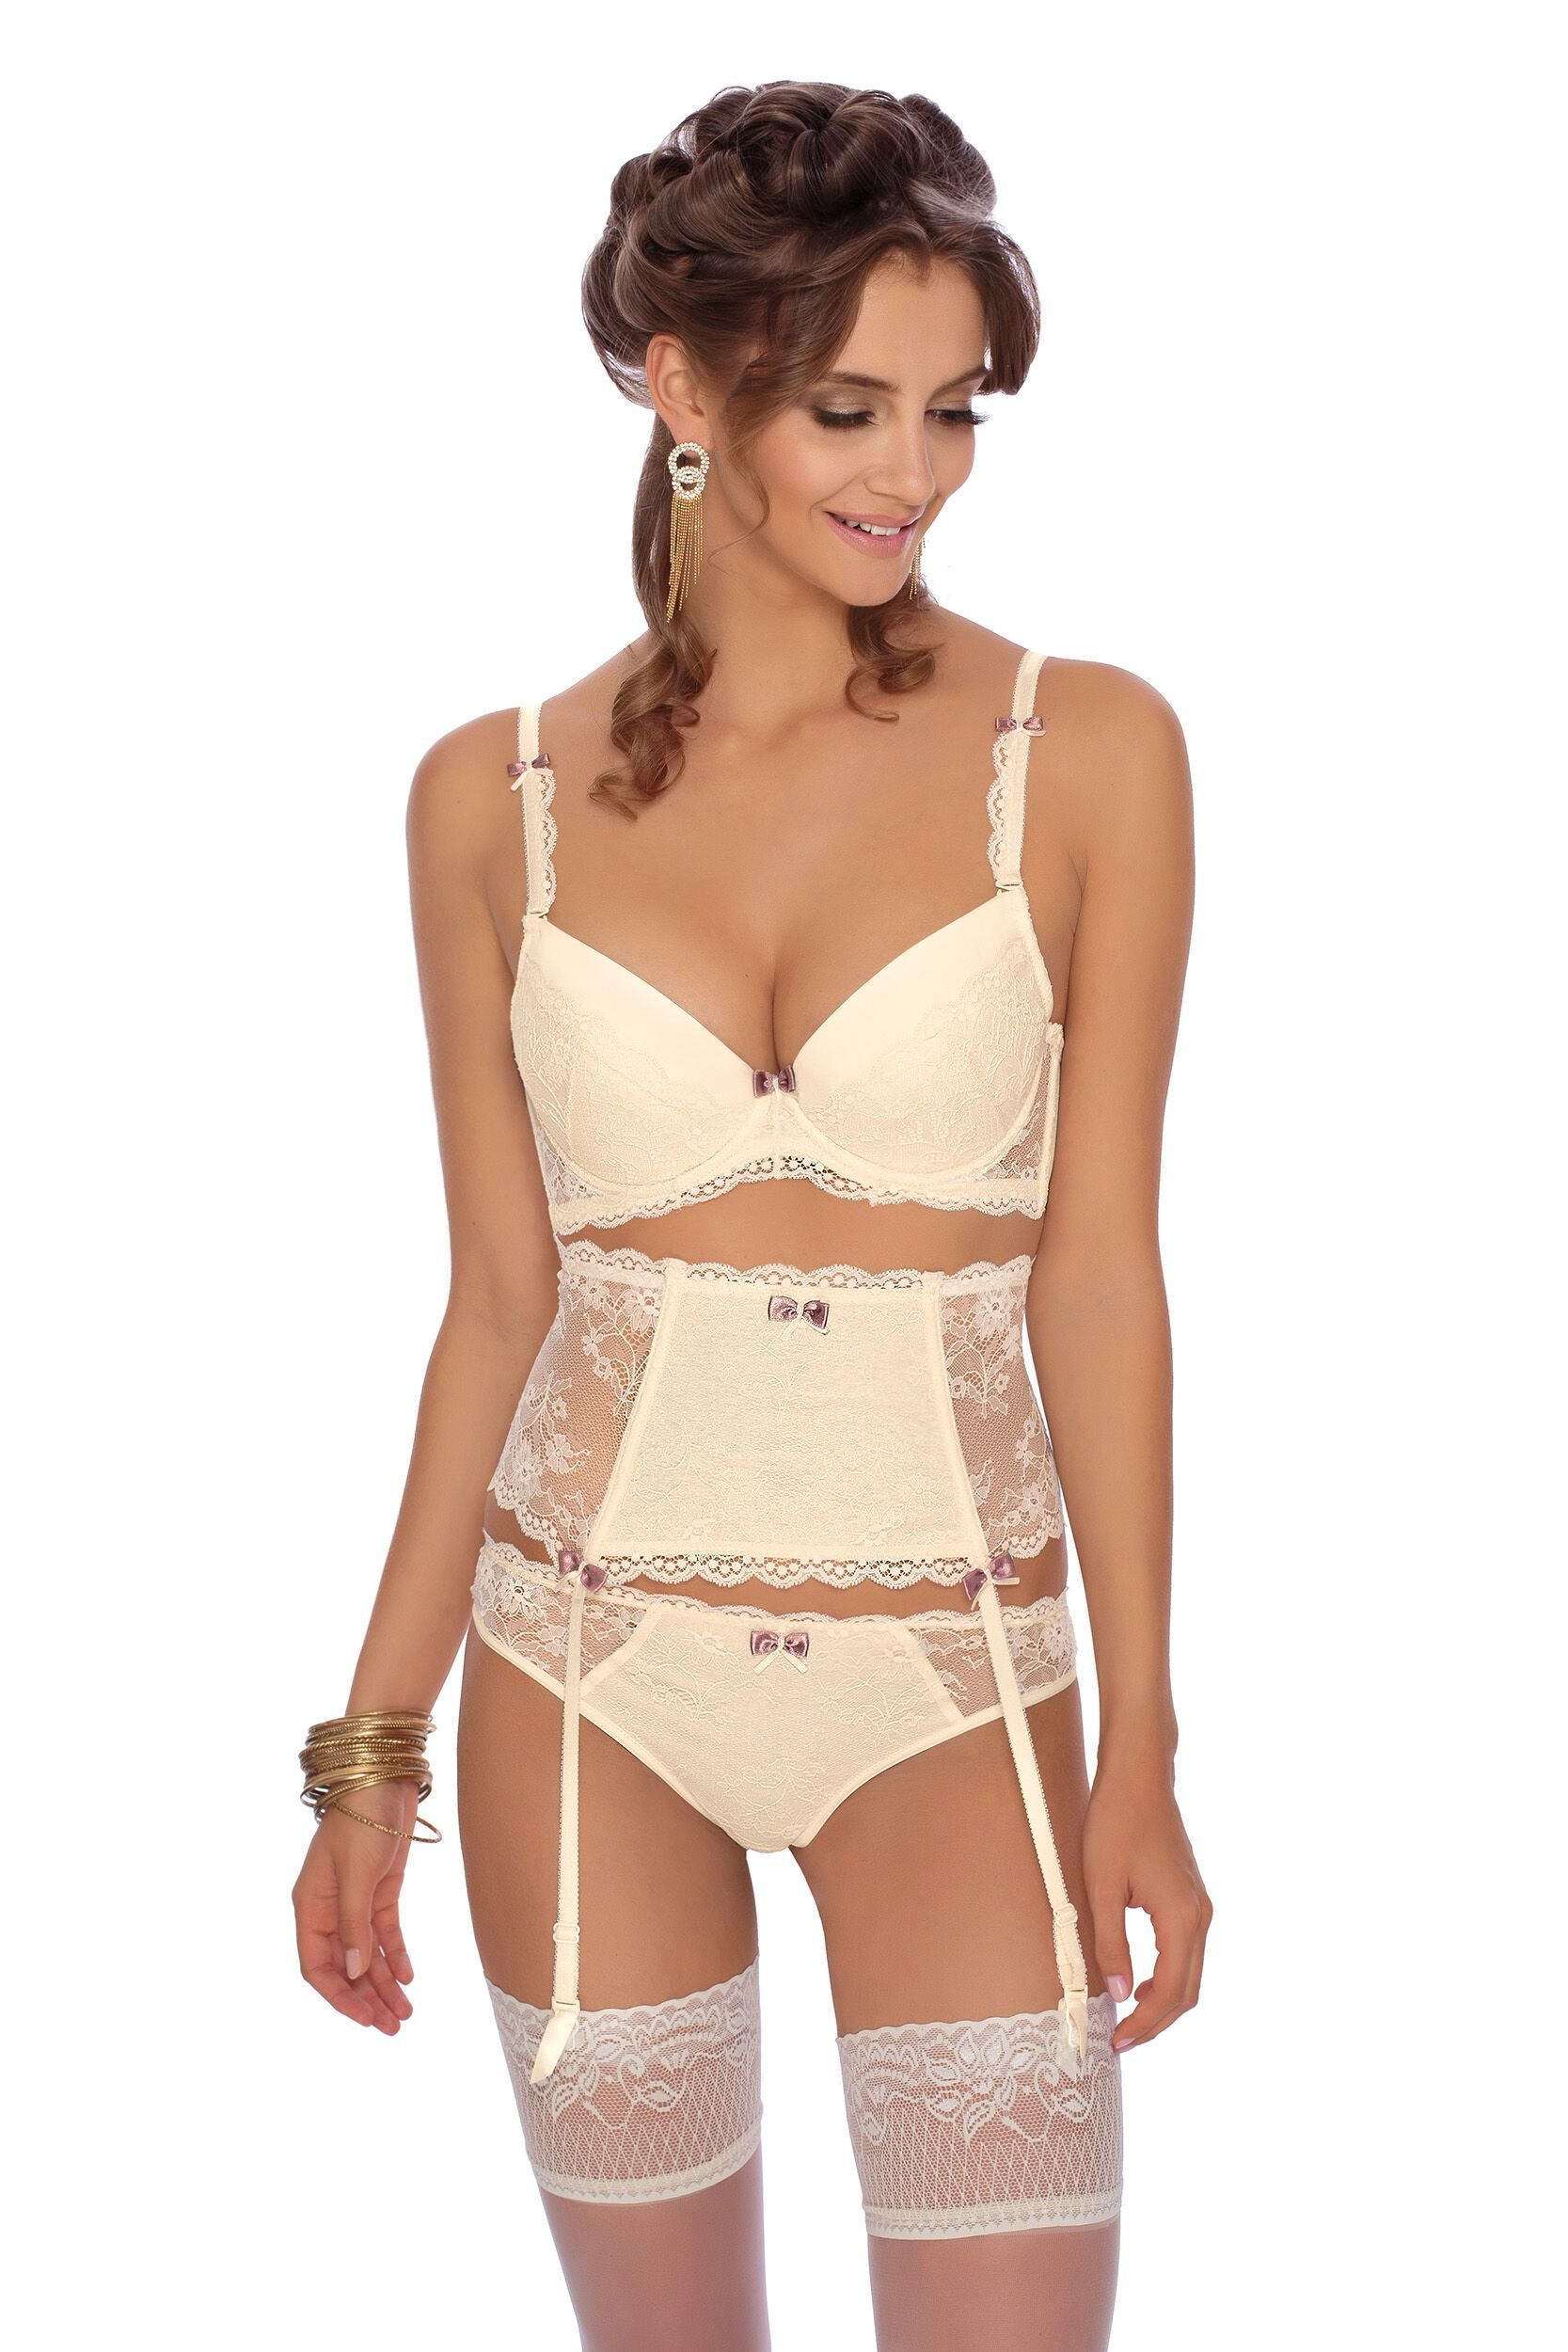 e26d78b3a Roza Fifi Suspender Belt (Ivory) - Suspender Belts - Roza - Charm and Lace